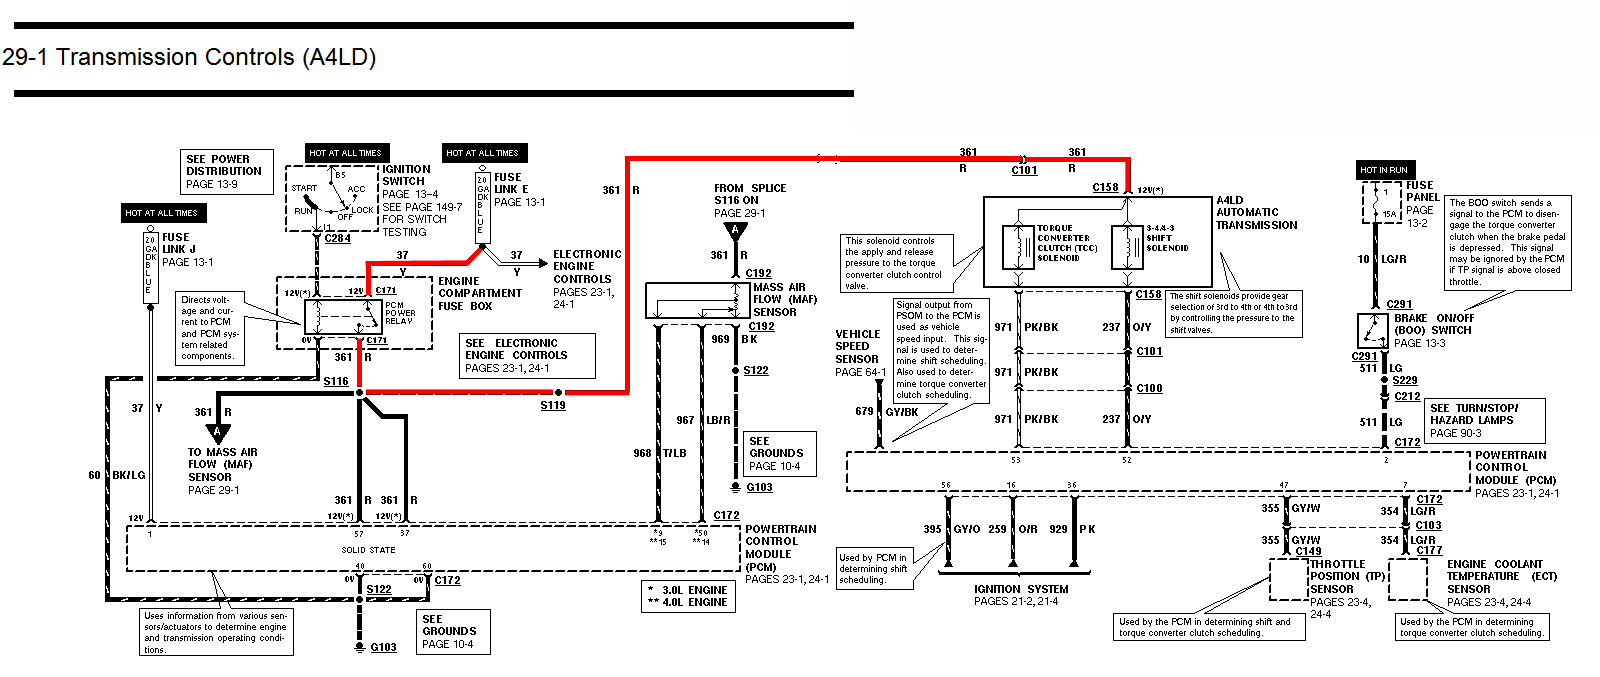 1994 ford f150 wiring diagram Collection-HERE not below for fullsize version 12-n